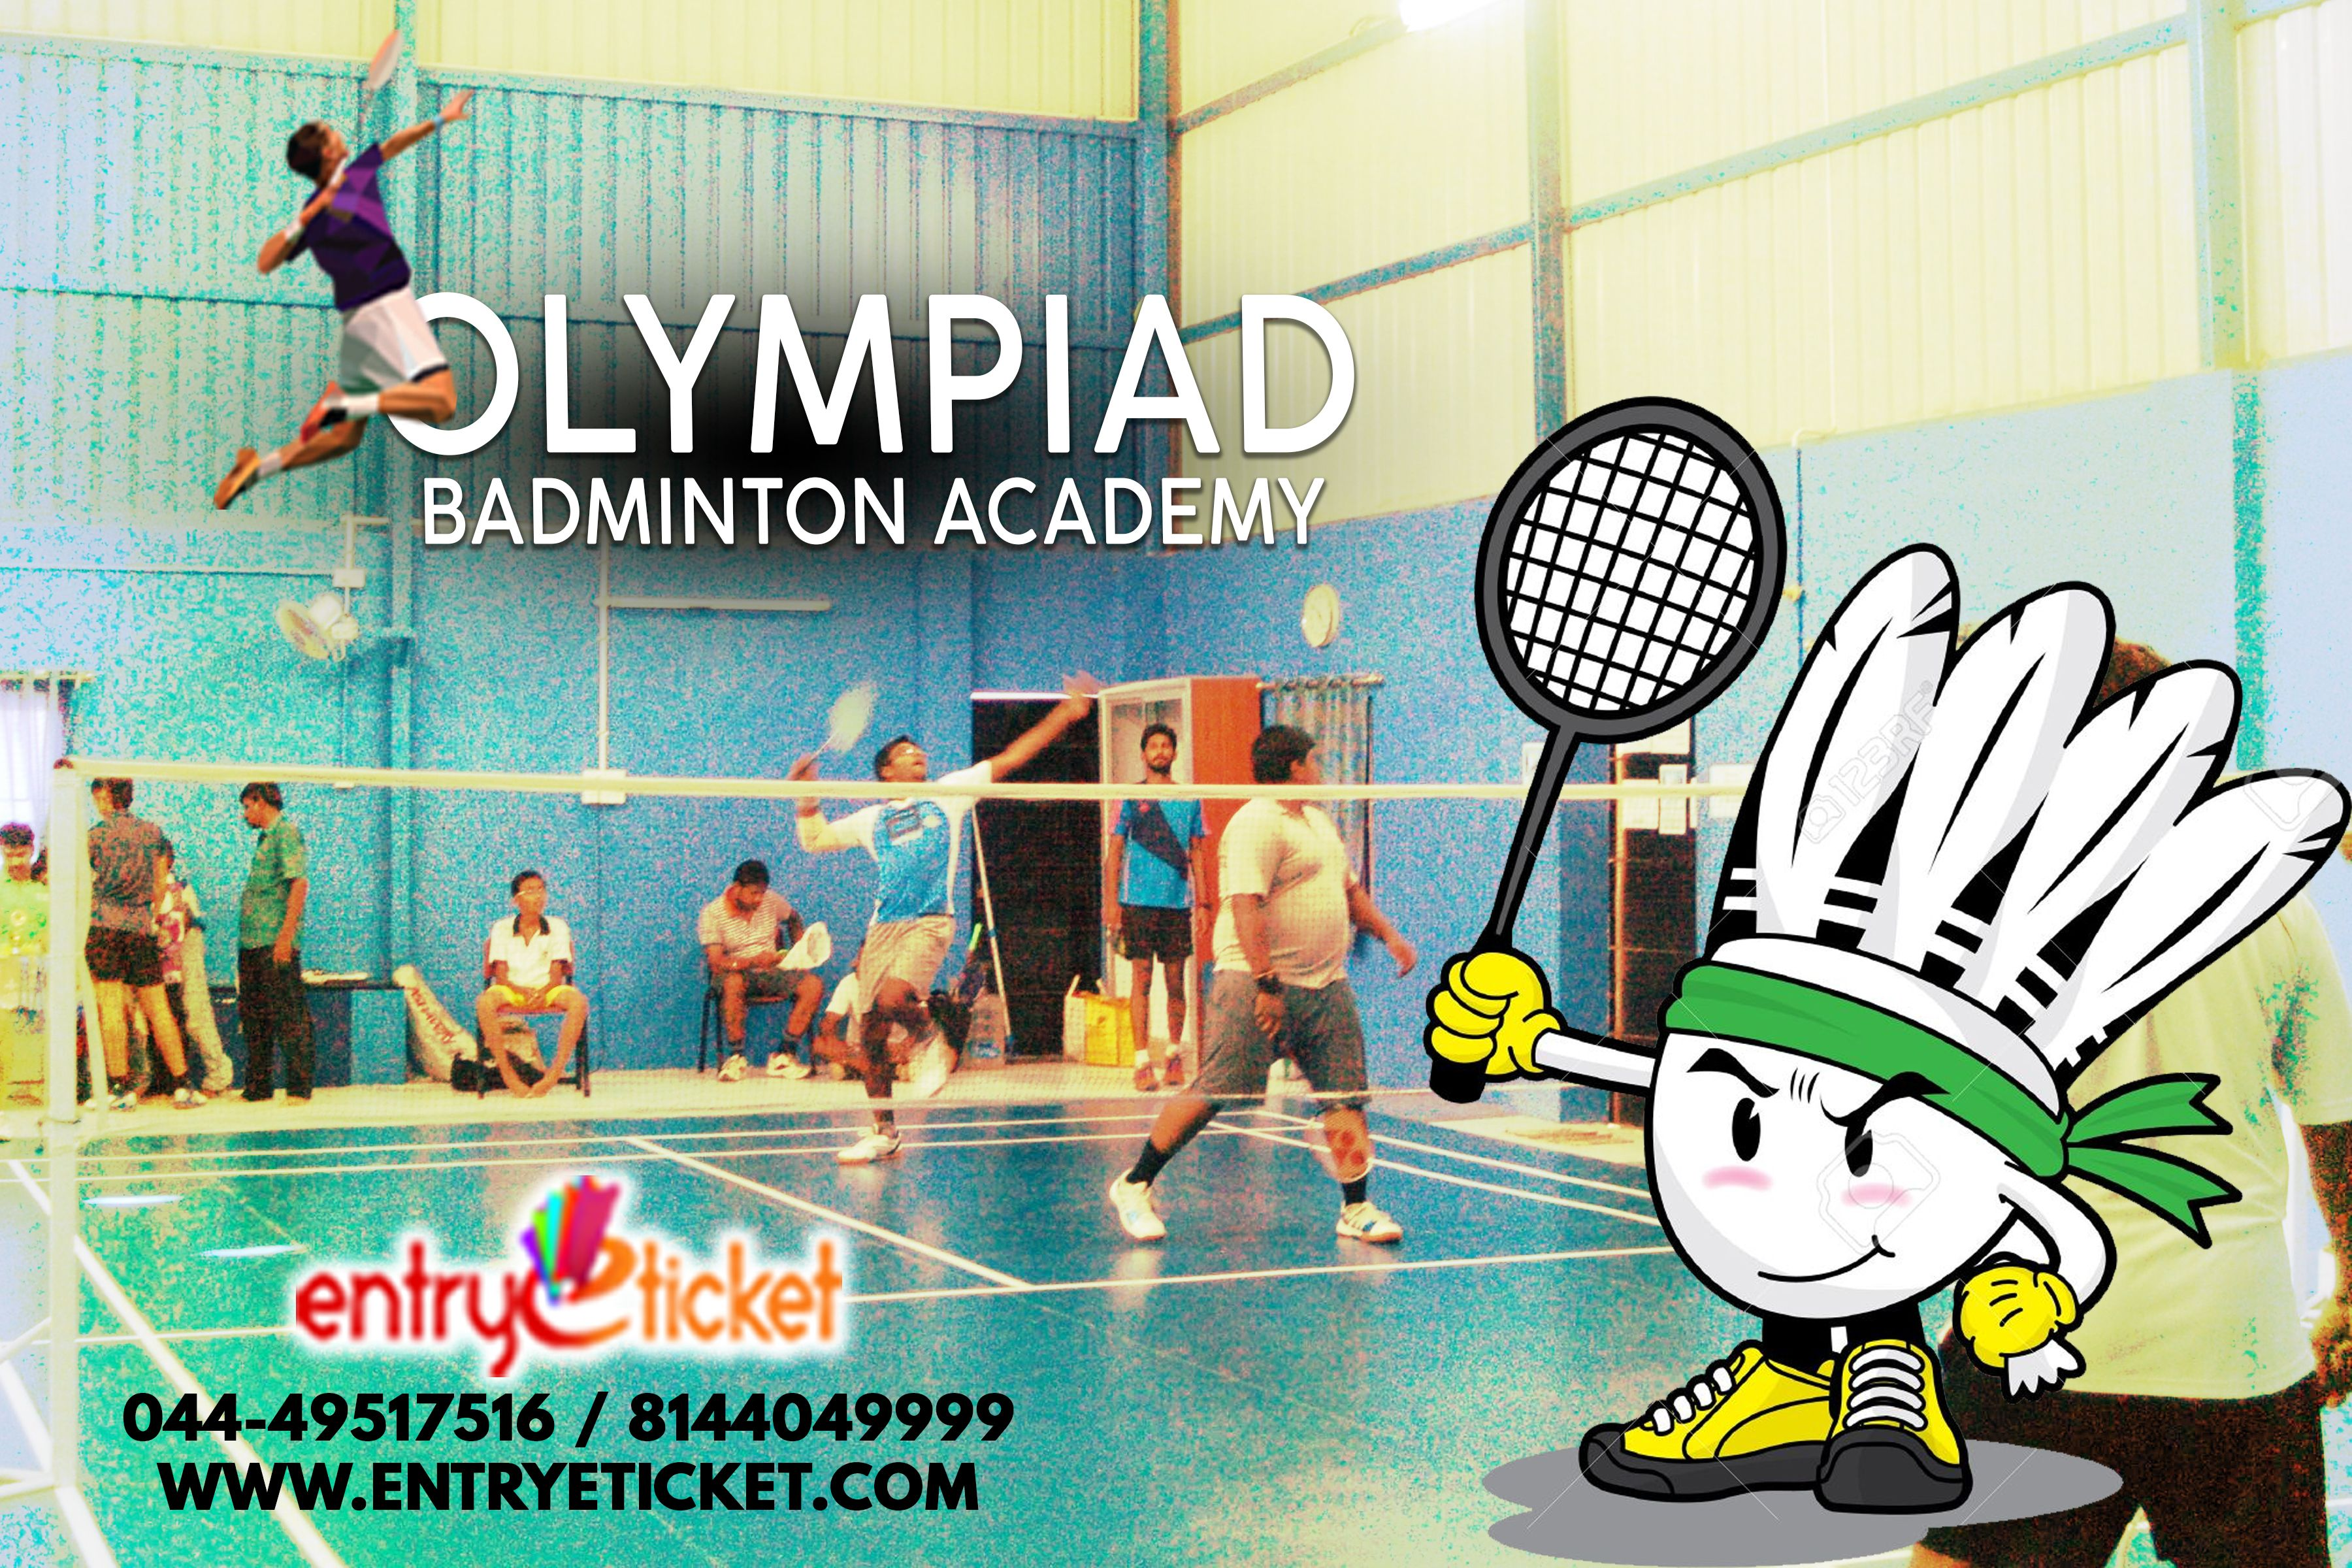 Olympiad Badminton Academy In Chennai Register Https Www Entryeticket Com Sports Olympiad Badminton Academy Badm Badminton Academy Conditioning Training